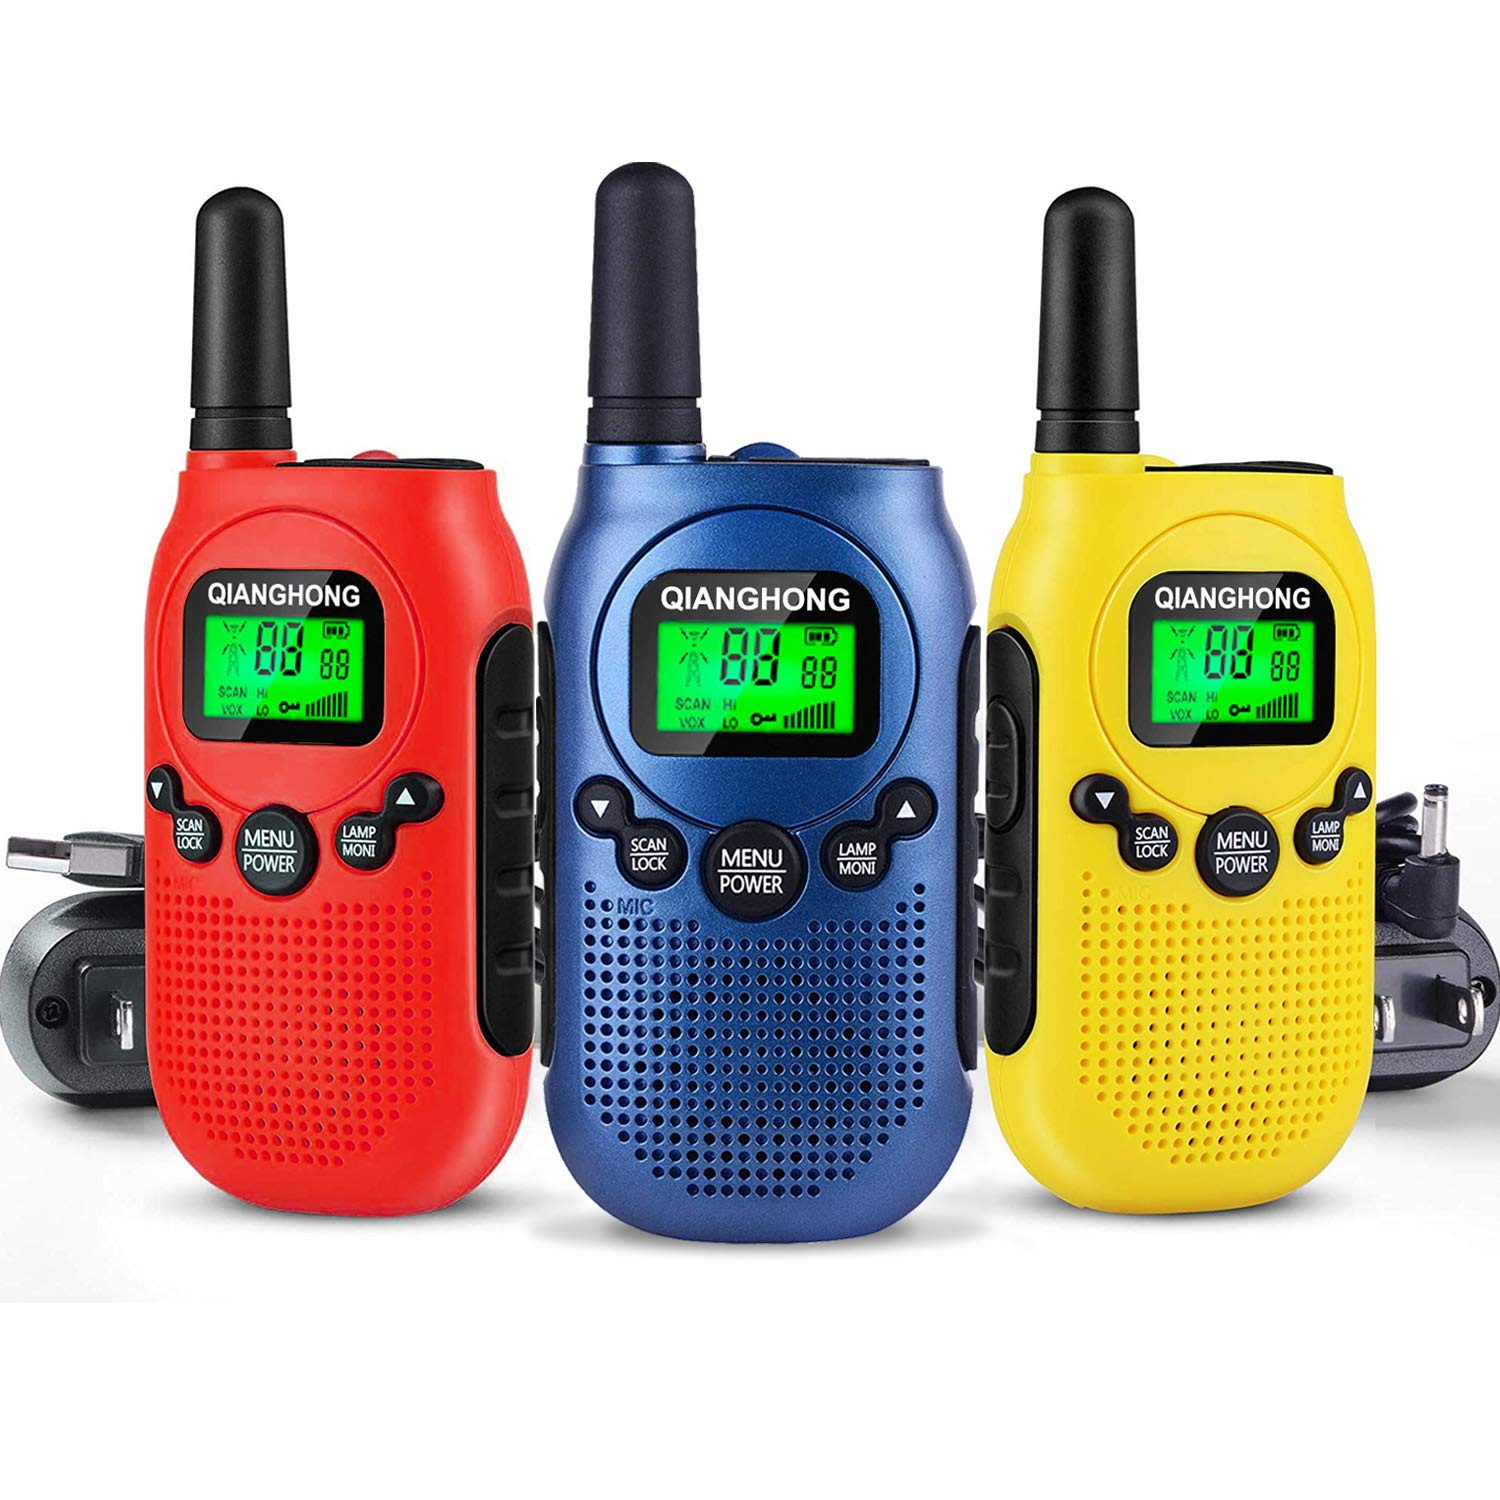 Qianghong Rechargeable Walkie Talkies for Kids Included Li-ion Battery and Charger (Red&Yellow&Blue)